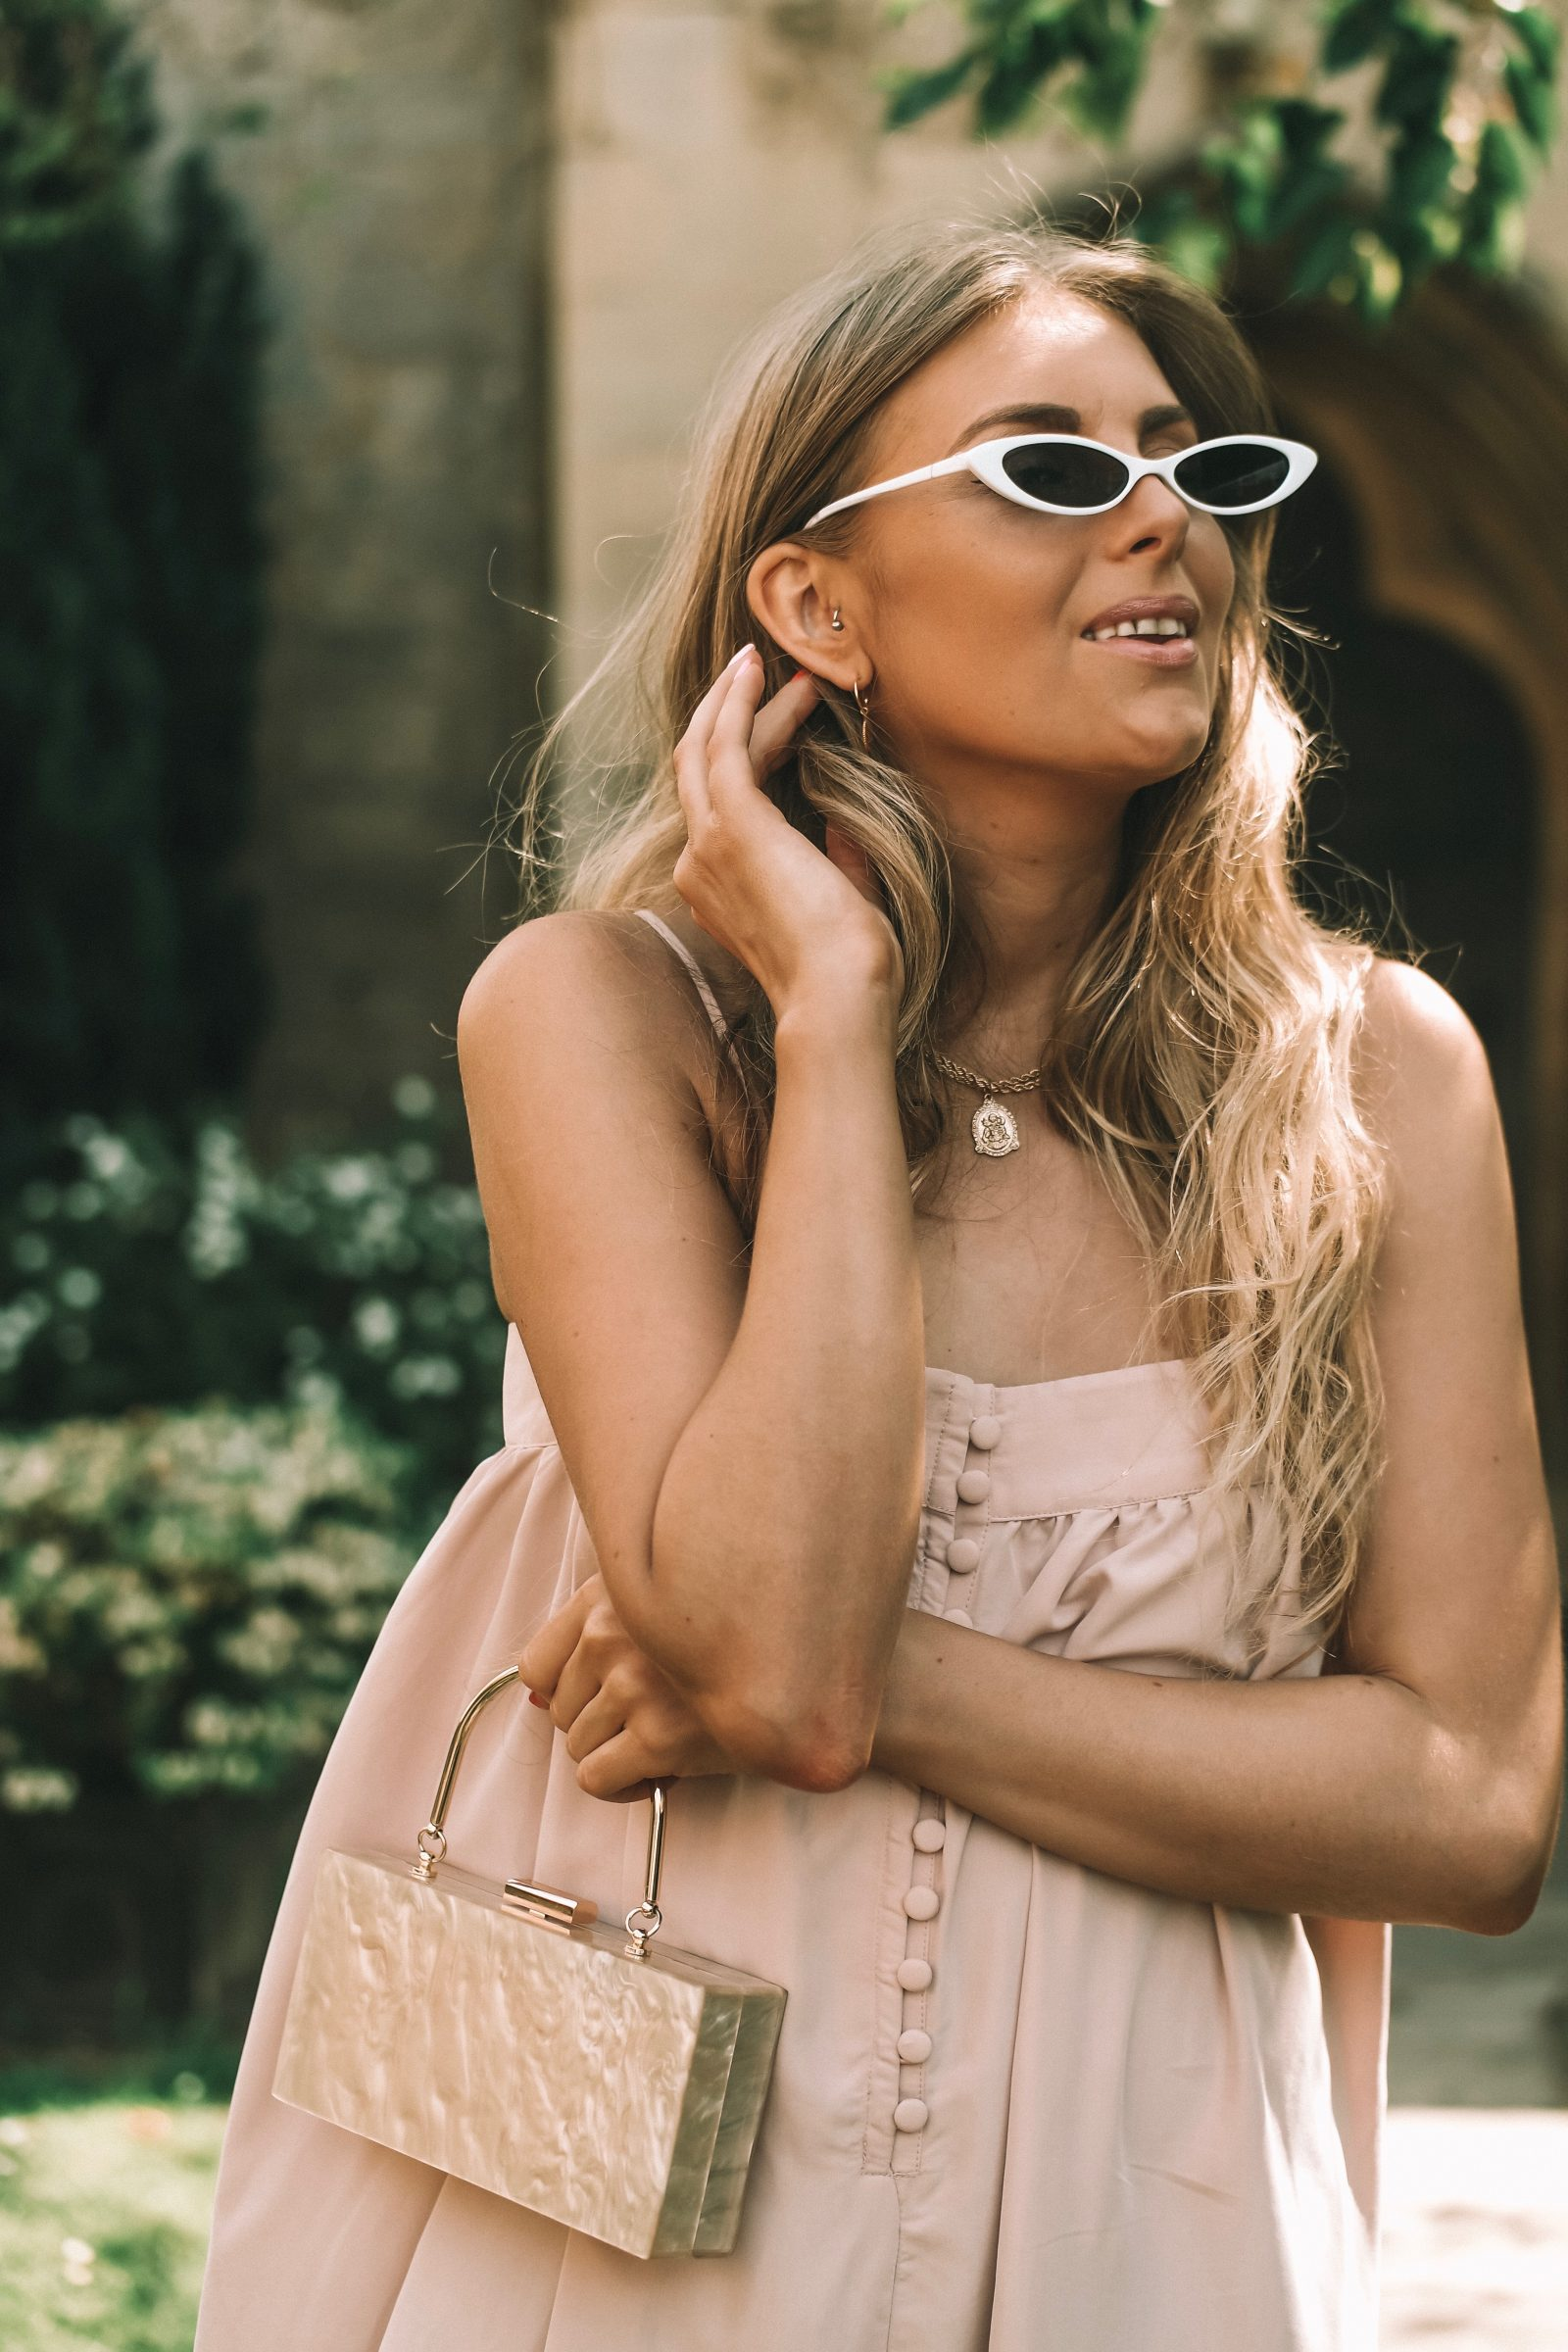 Asos Wedding Outfit - Micro Sunglasses